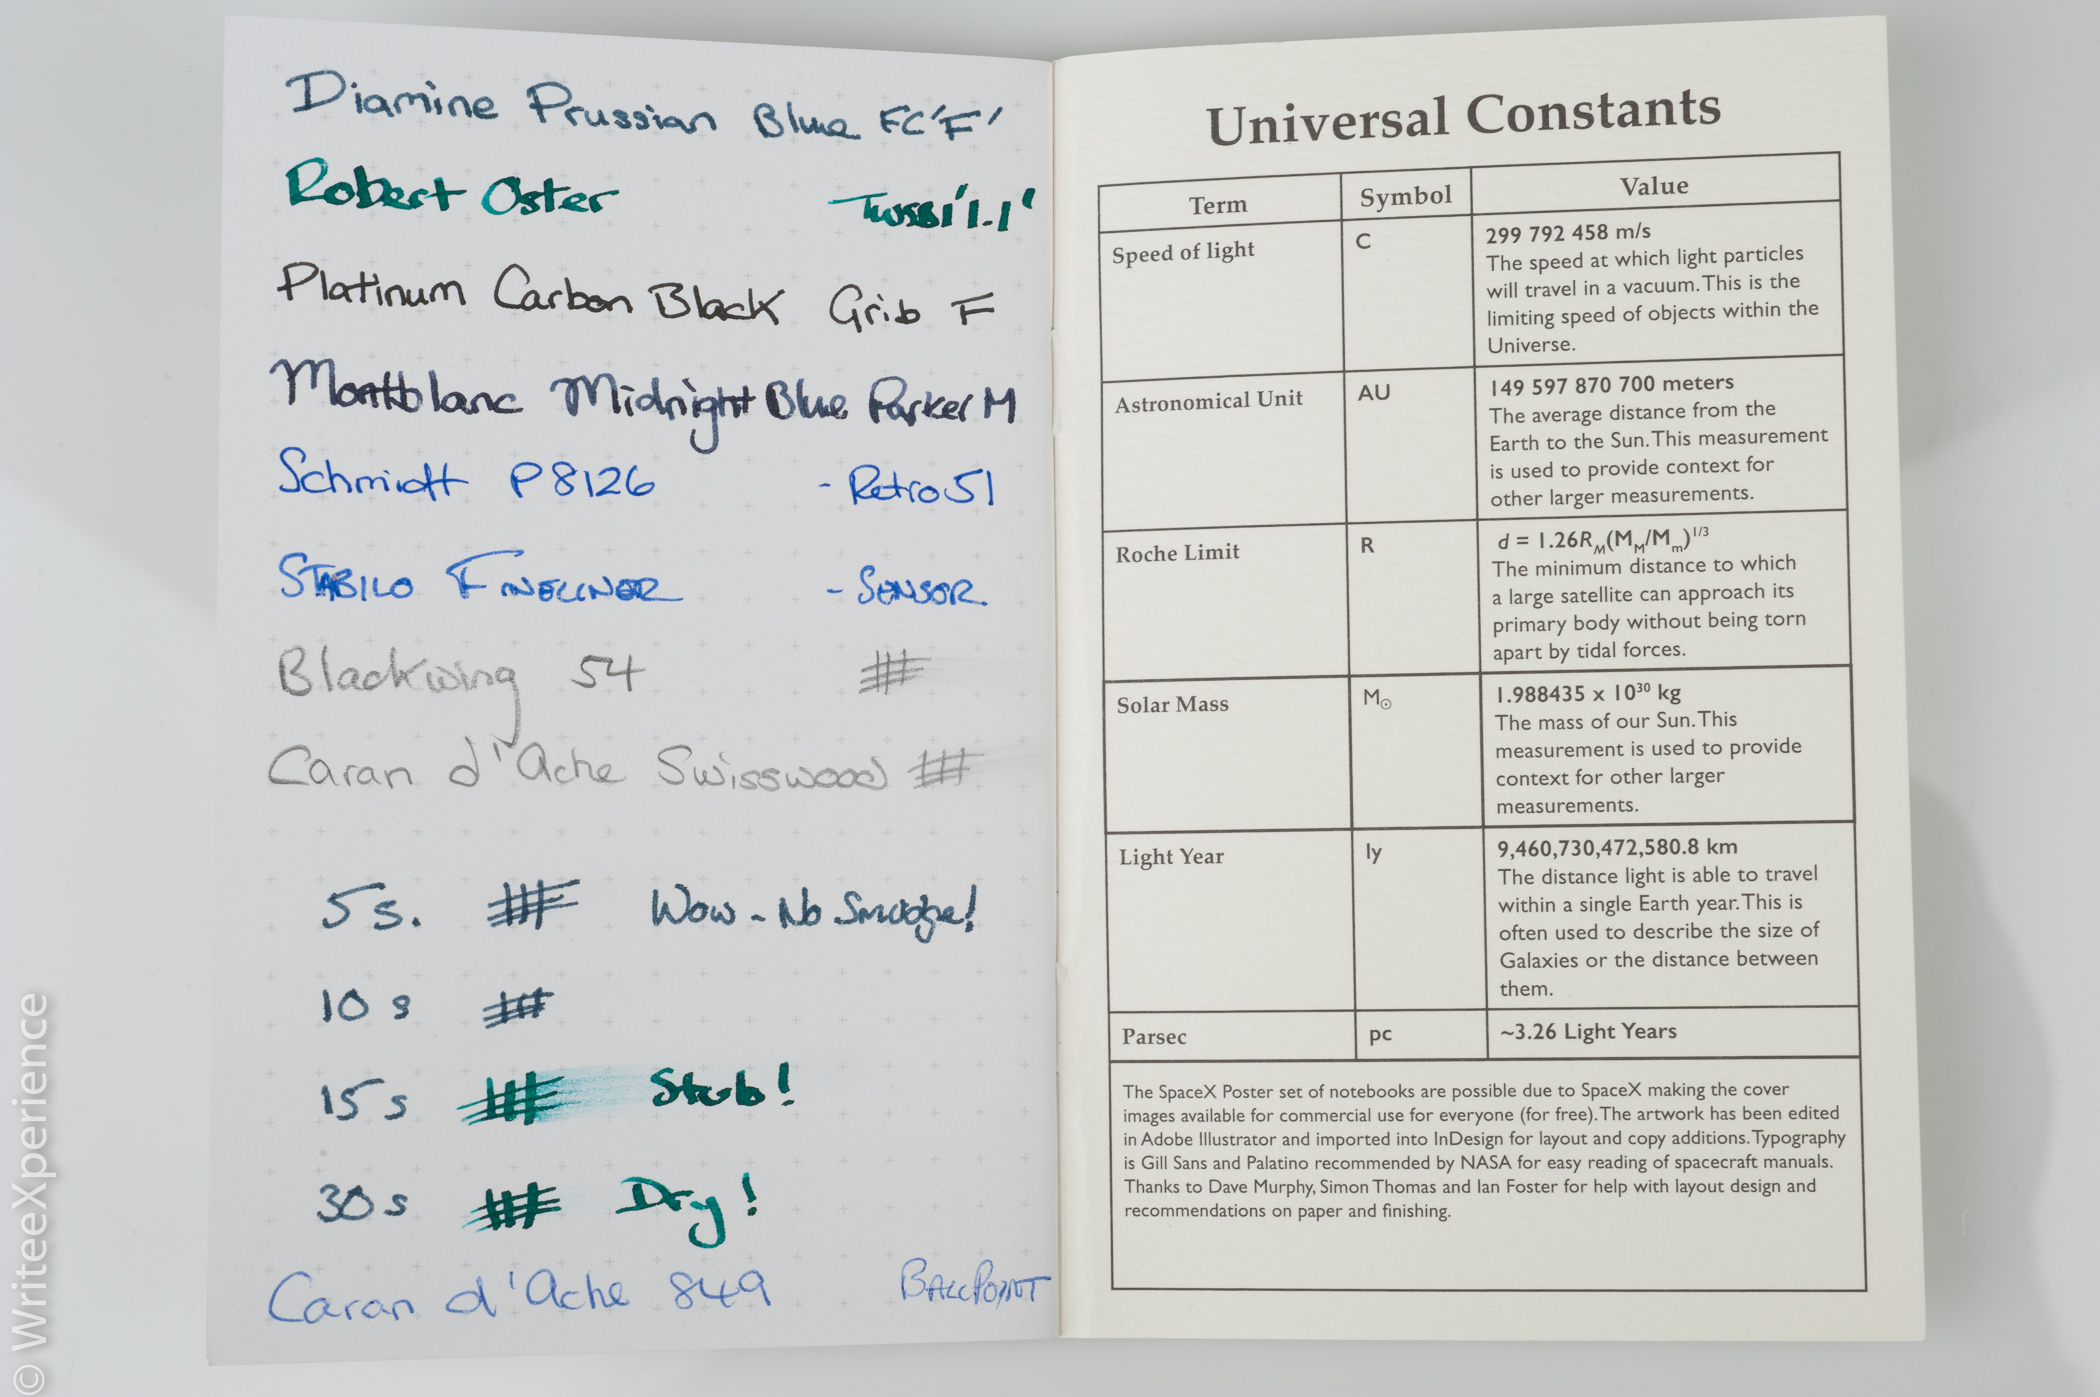 Sample writing using a variety of pens and pencils